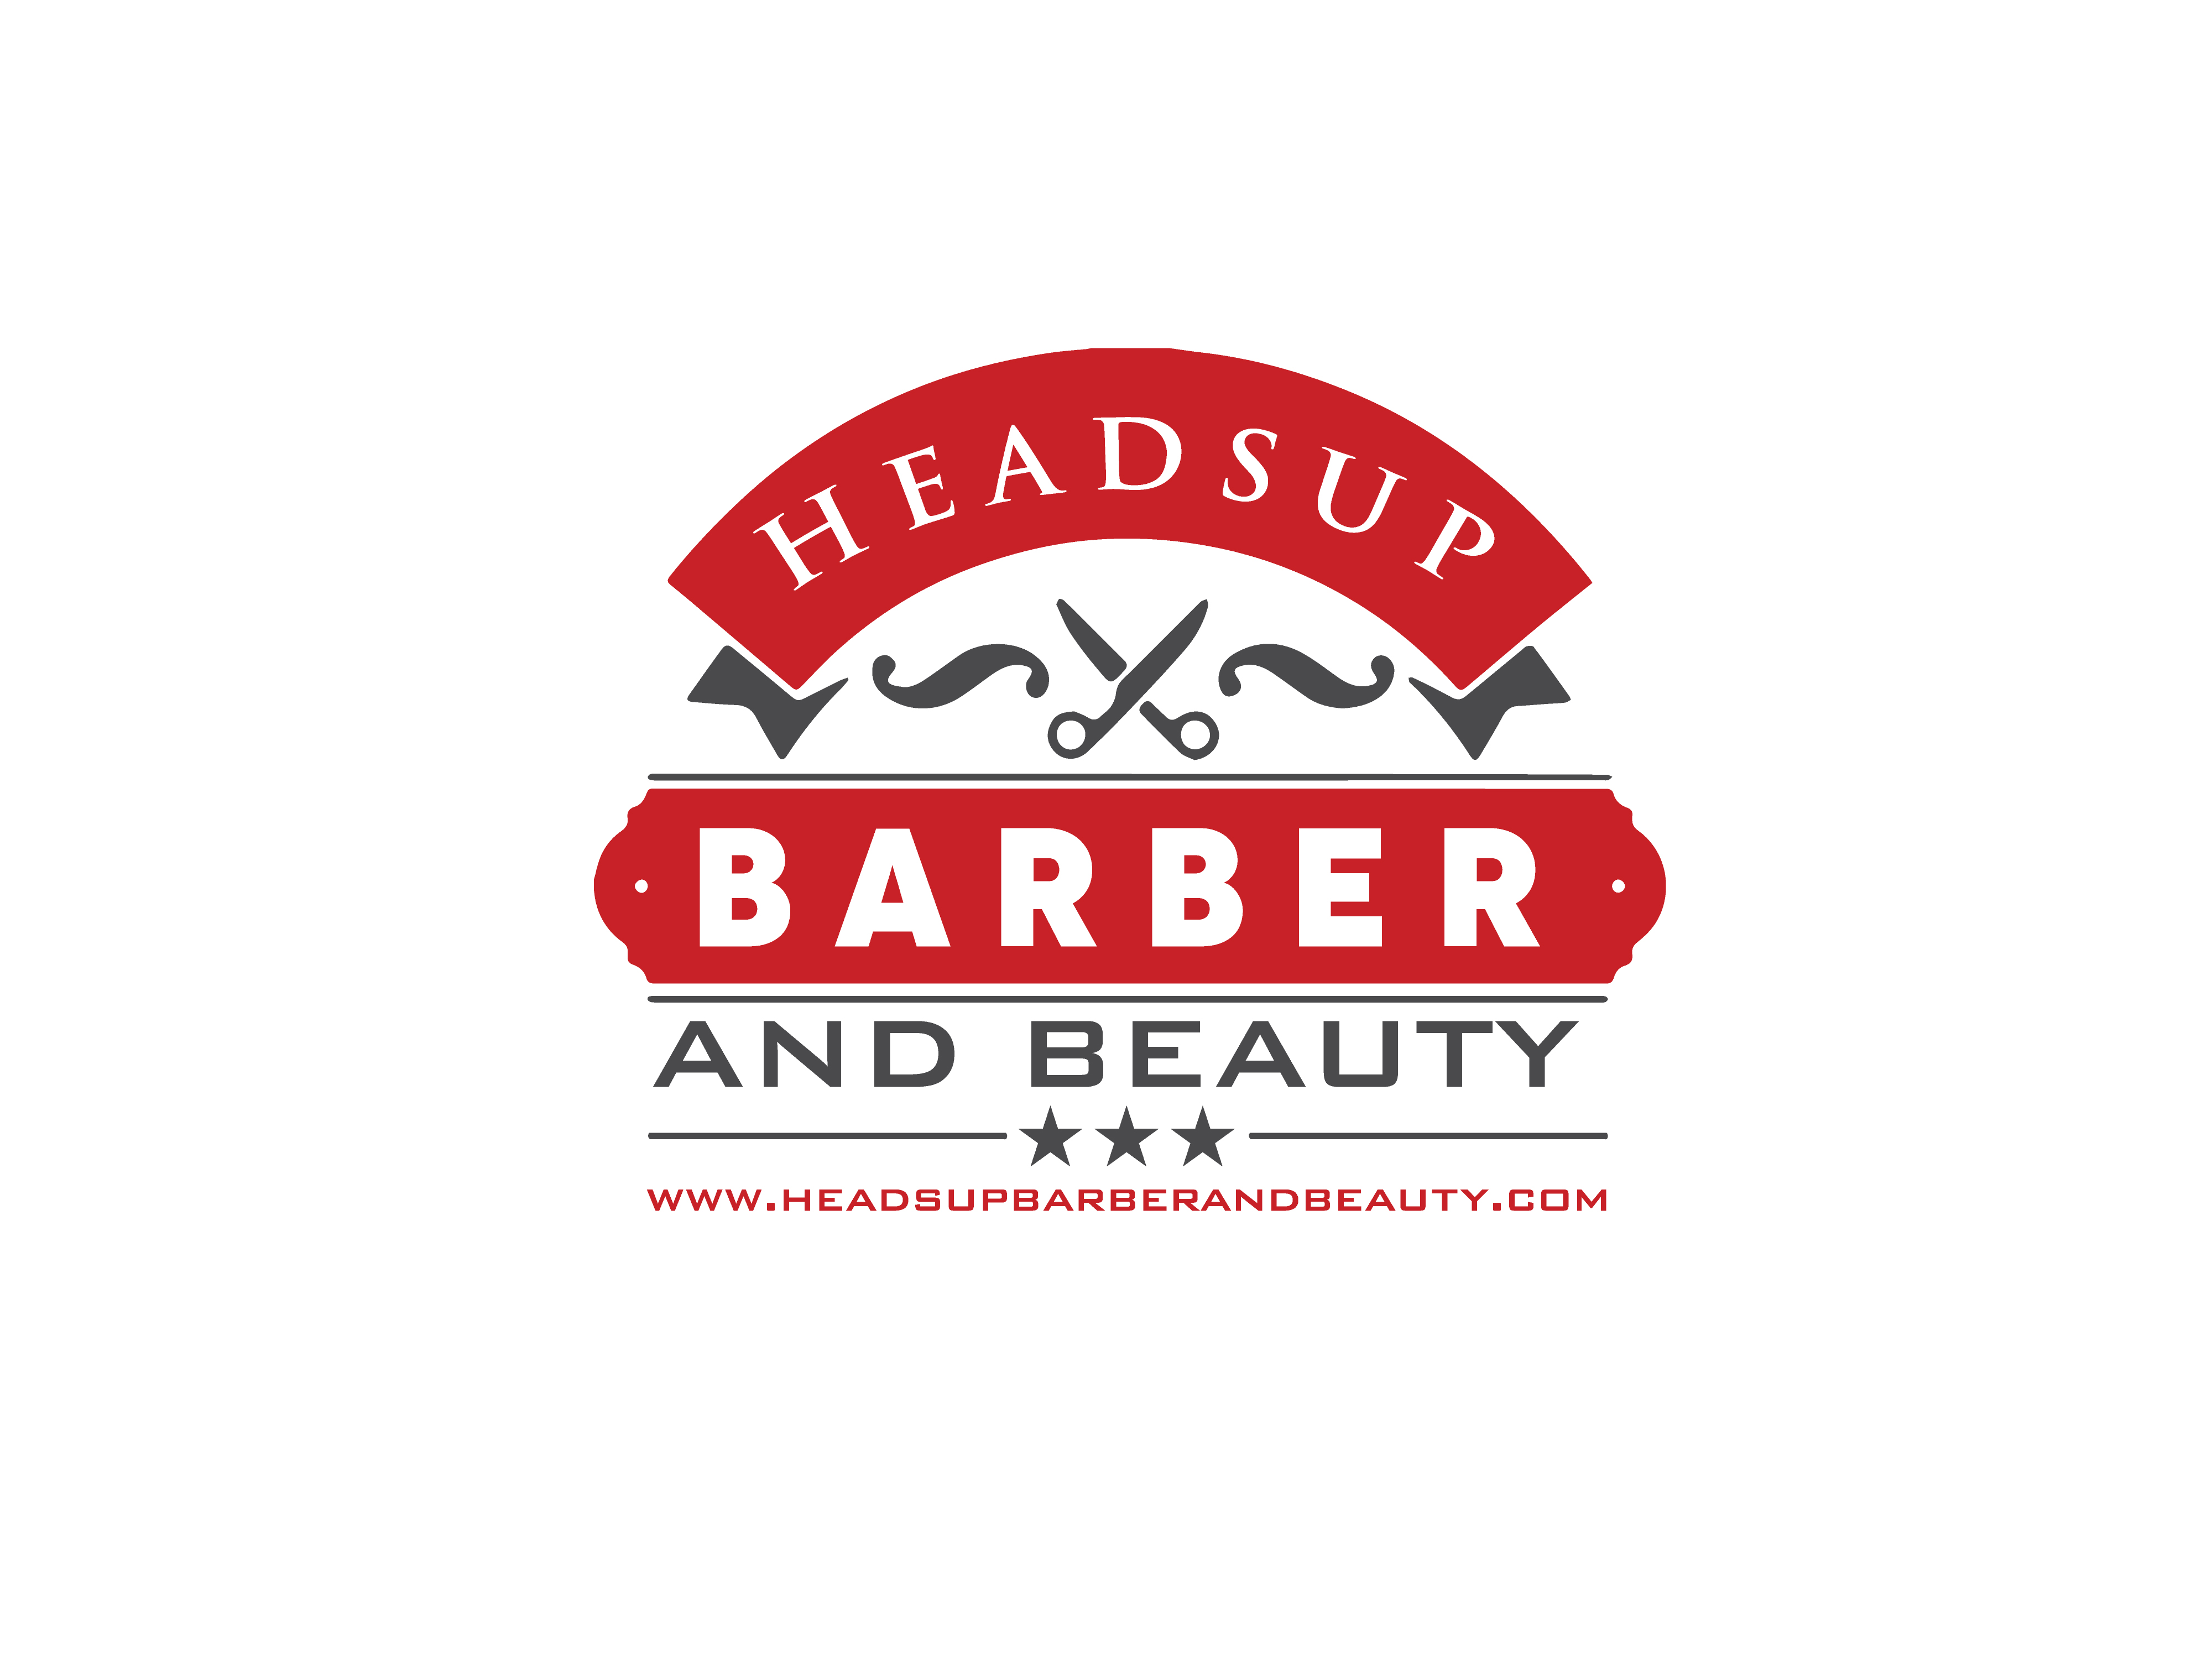 Heads Up Barber and Beauty